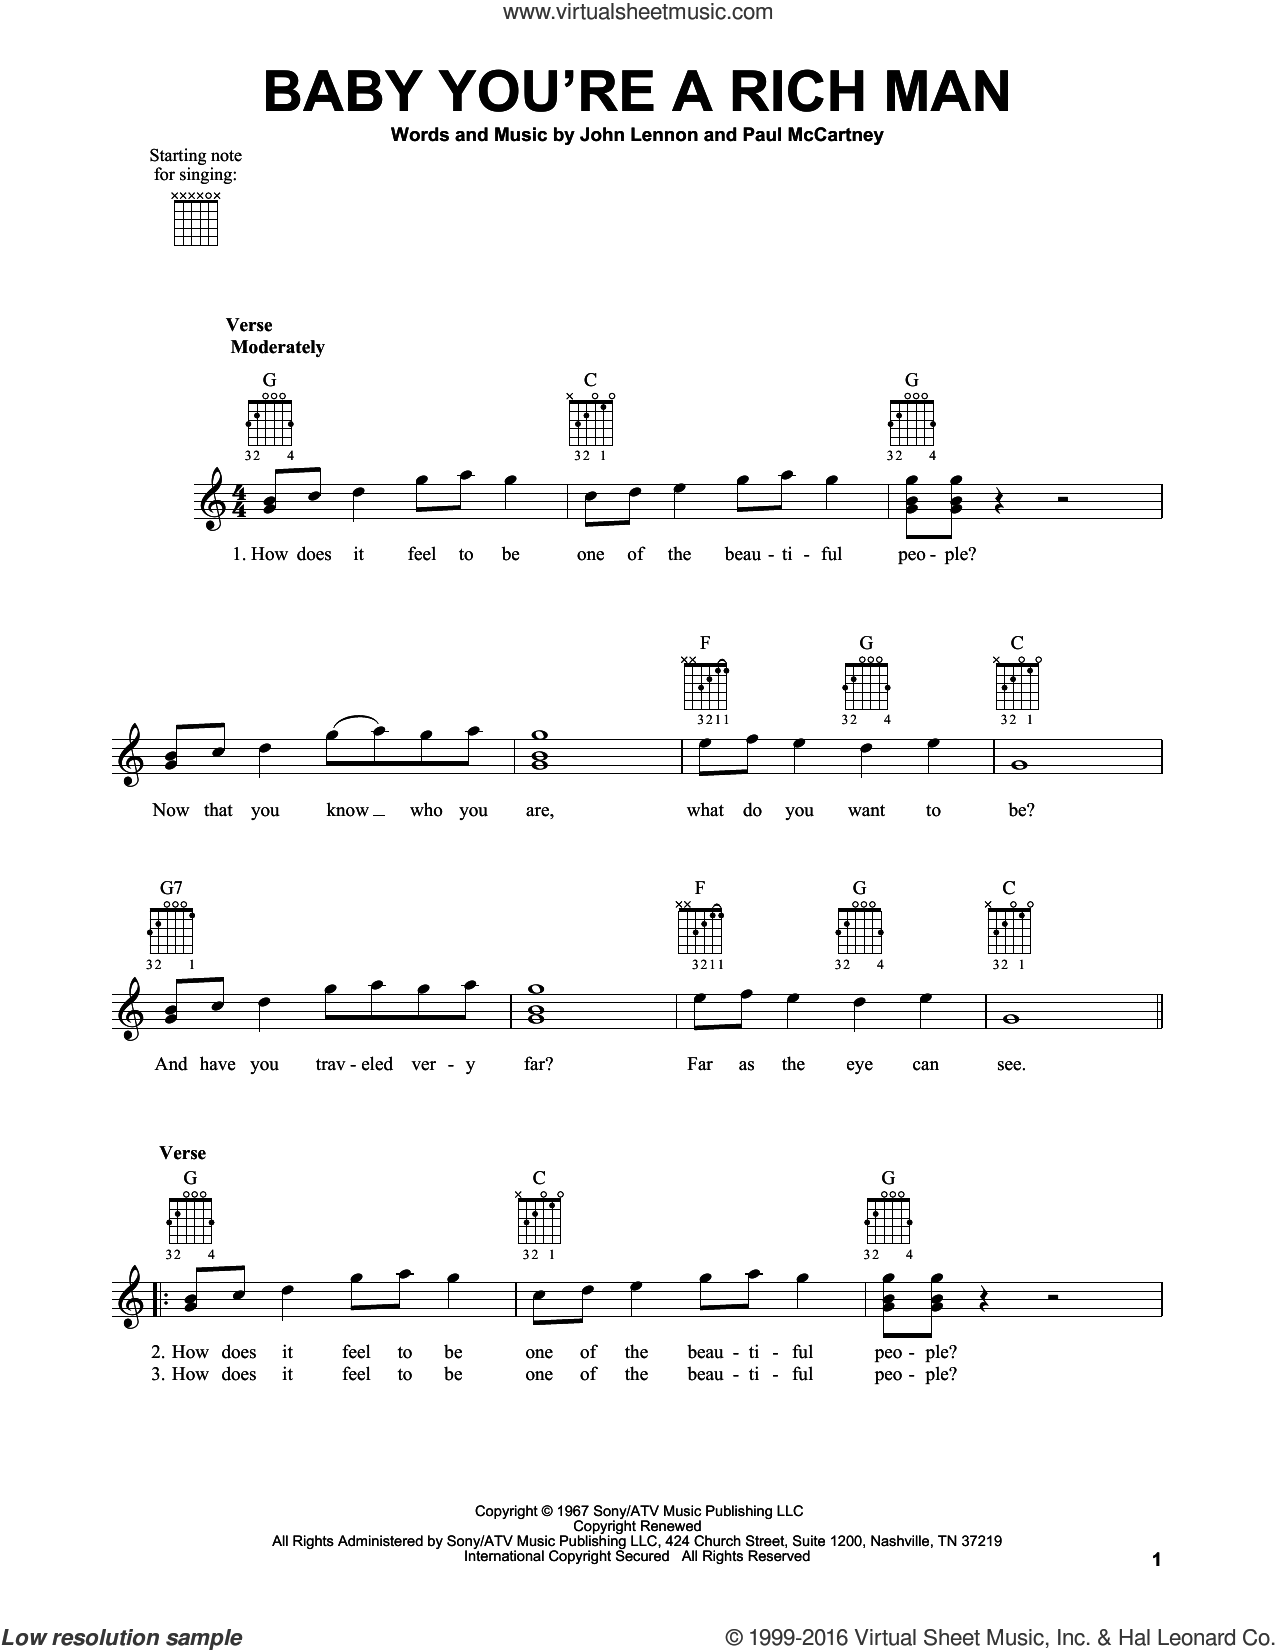 Baby You're A Rich Man sheet music for guitar solo (chords) by The Beatles, John Lennon and Paul McCartney, easy guitar (chords). Score Image Preview.